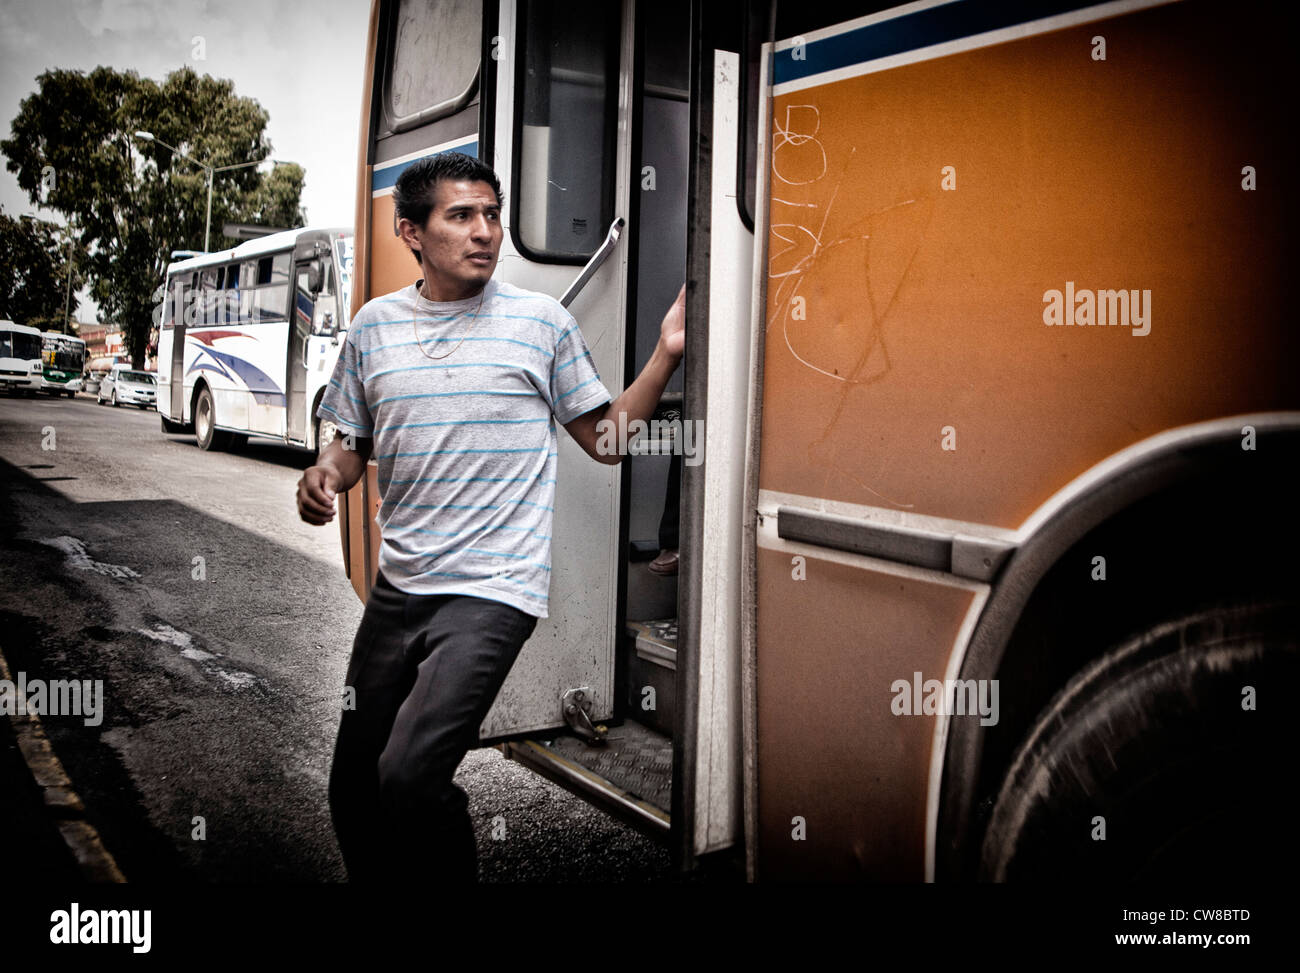 Man getting off of a bus in Puebla, Mexico - Stock Image